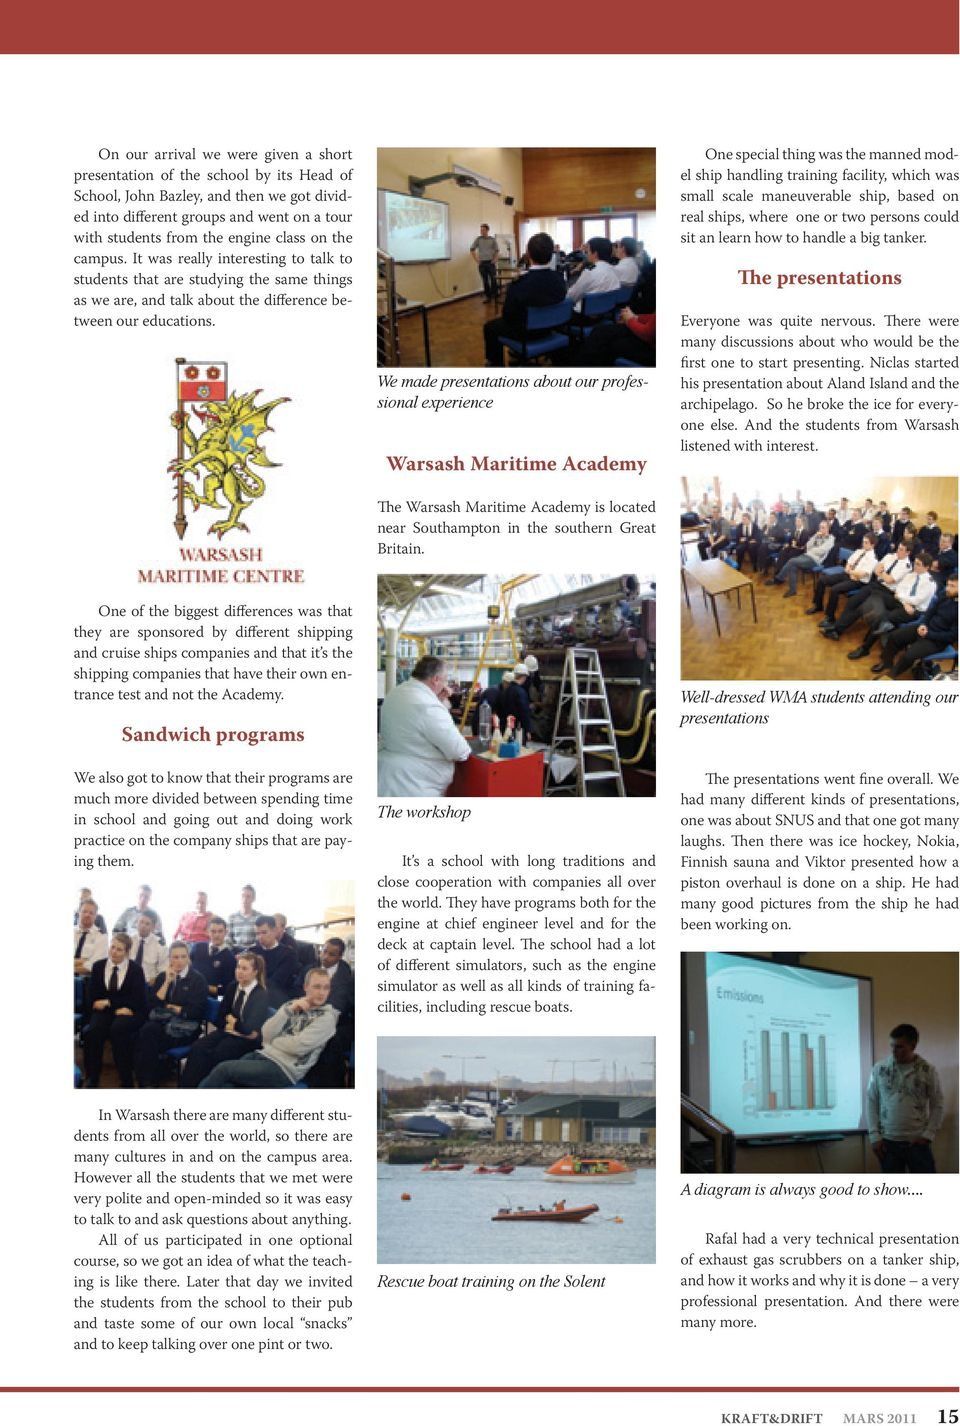 We made presentations about our professional experience Warsash Maritime Academy The Warsash Maritime Academy is located near Southampton in the southern Great Britain.